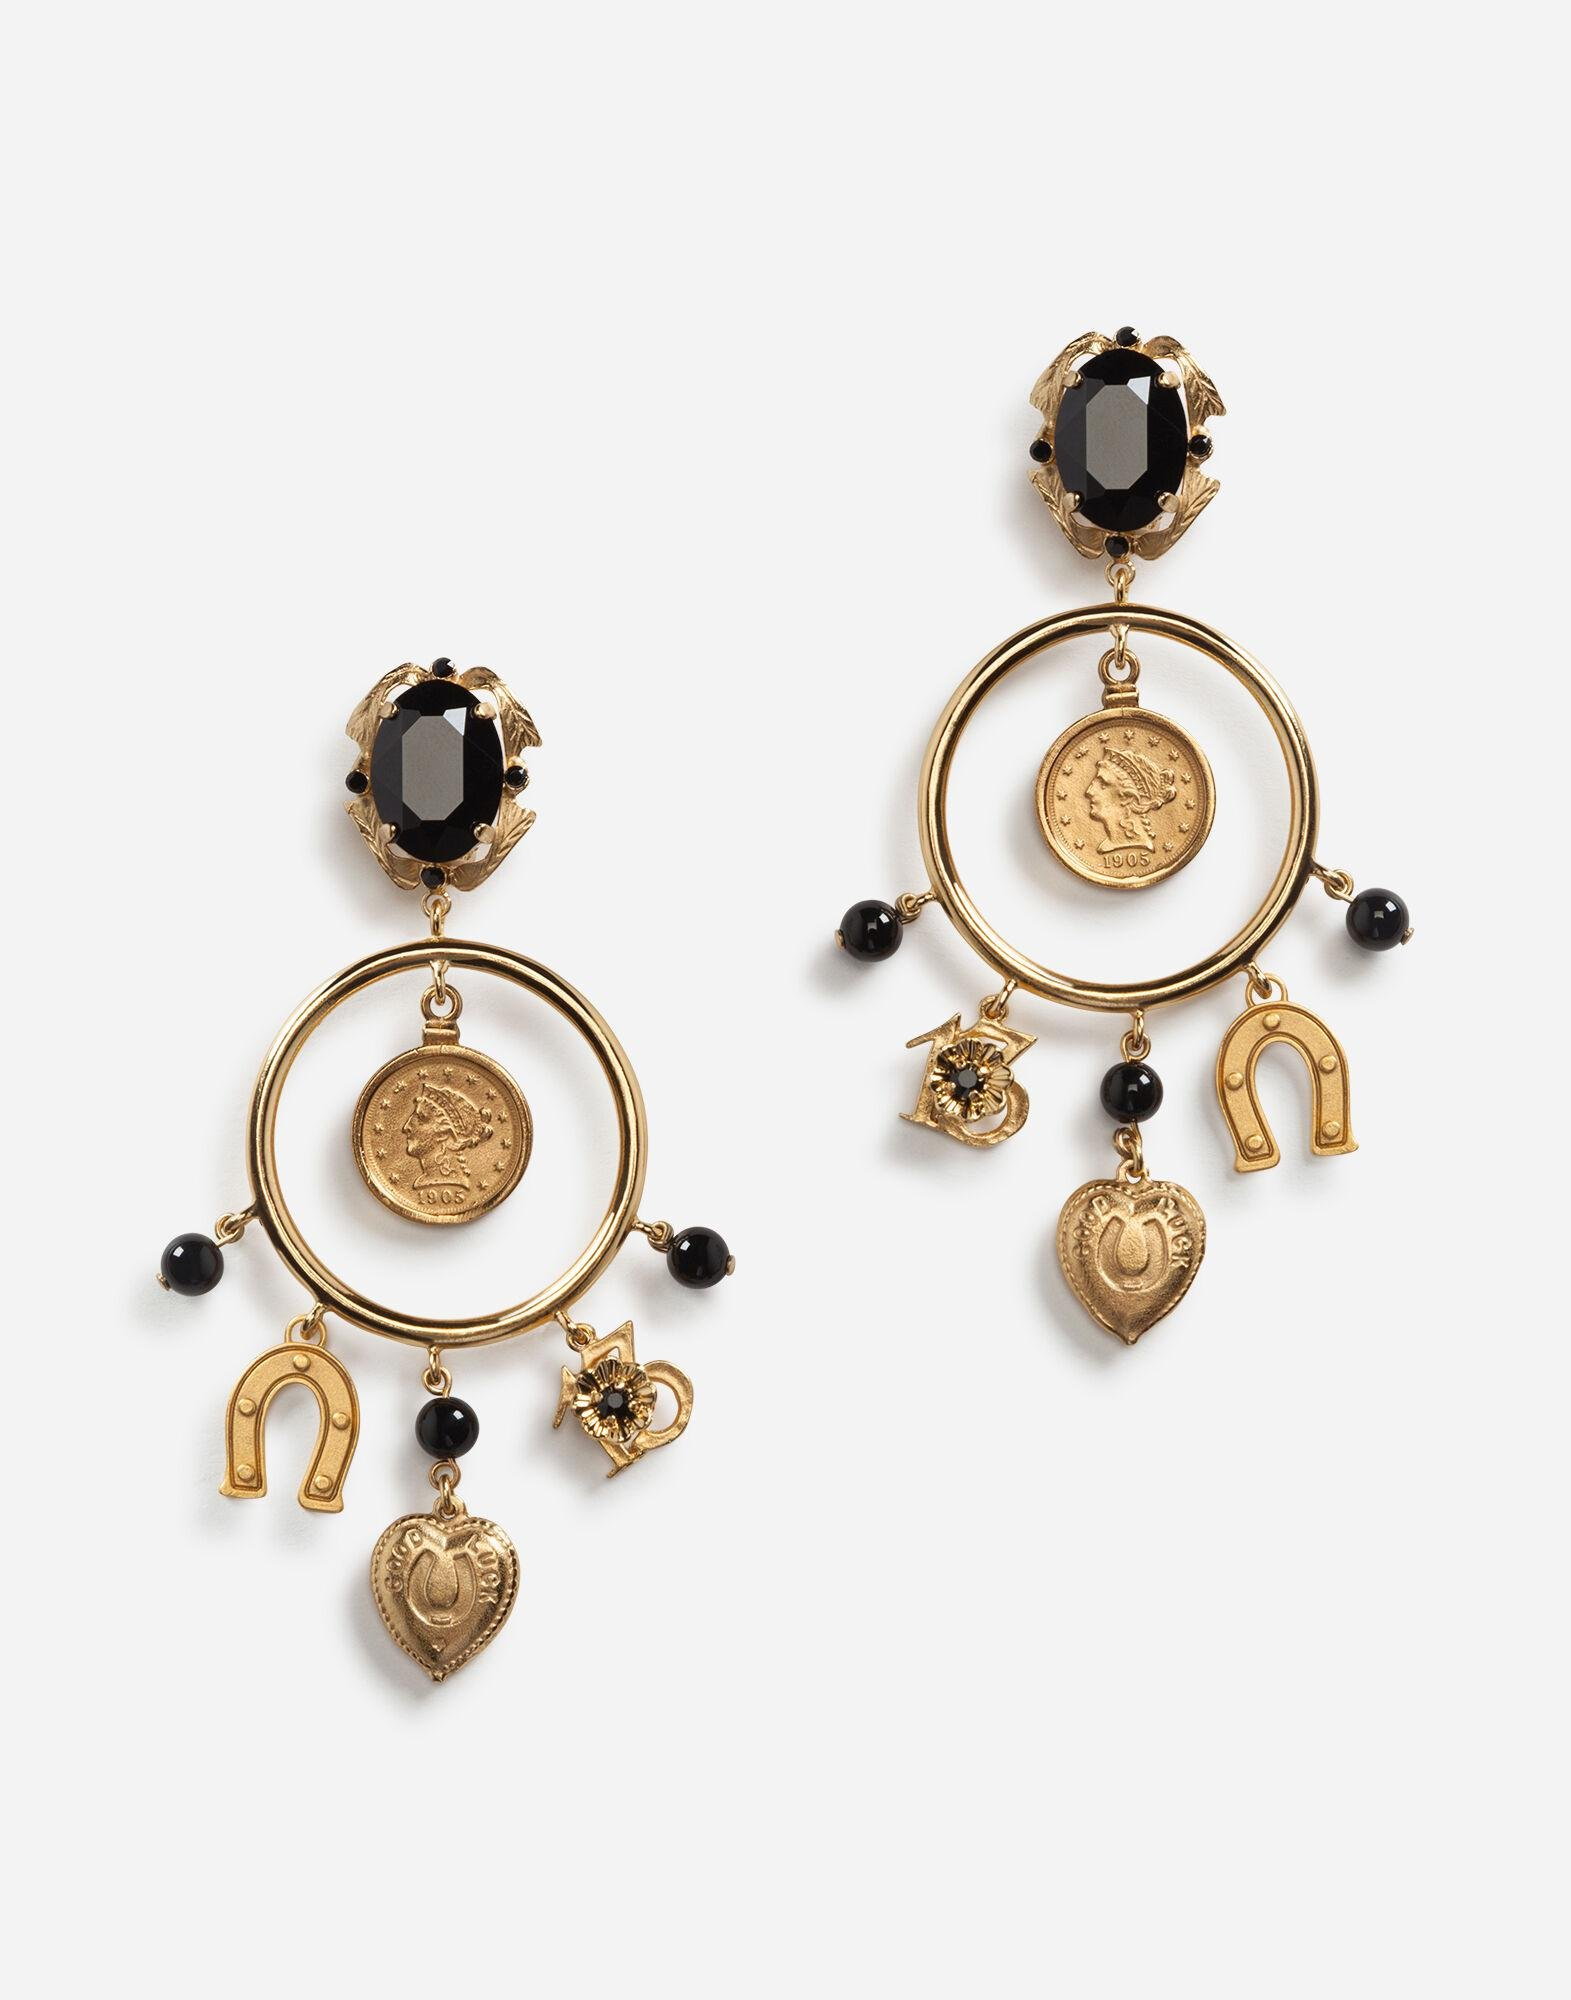 Drop earrings with decorative signature details